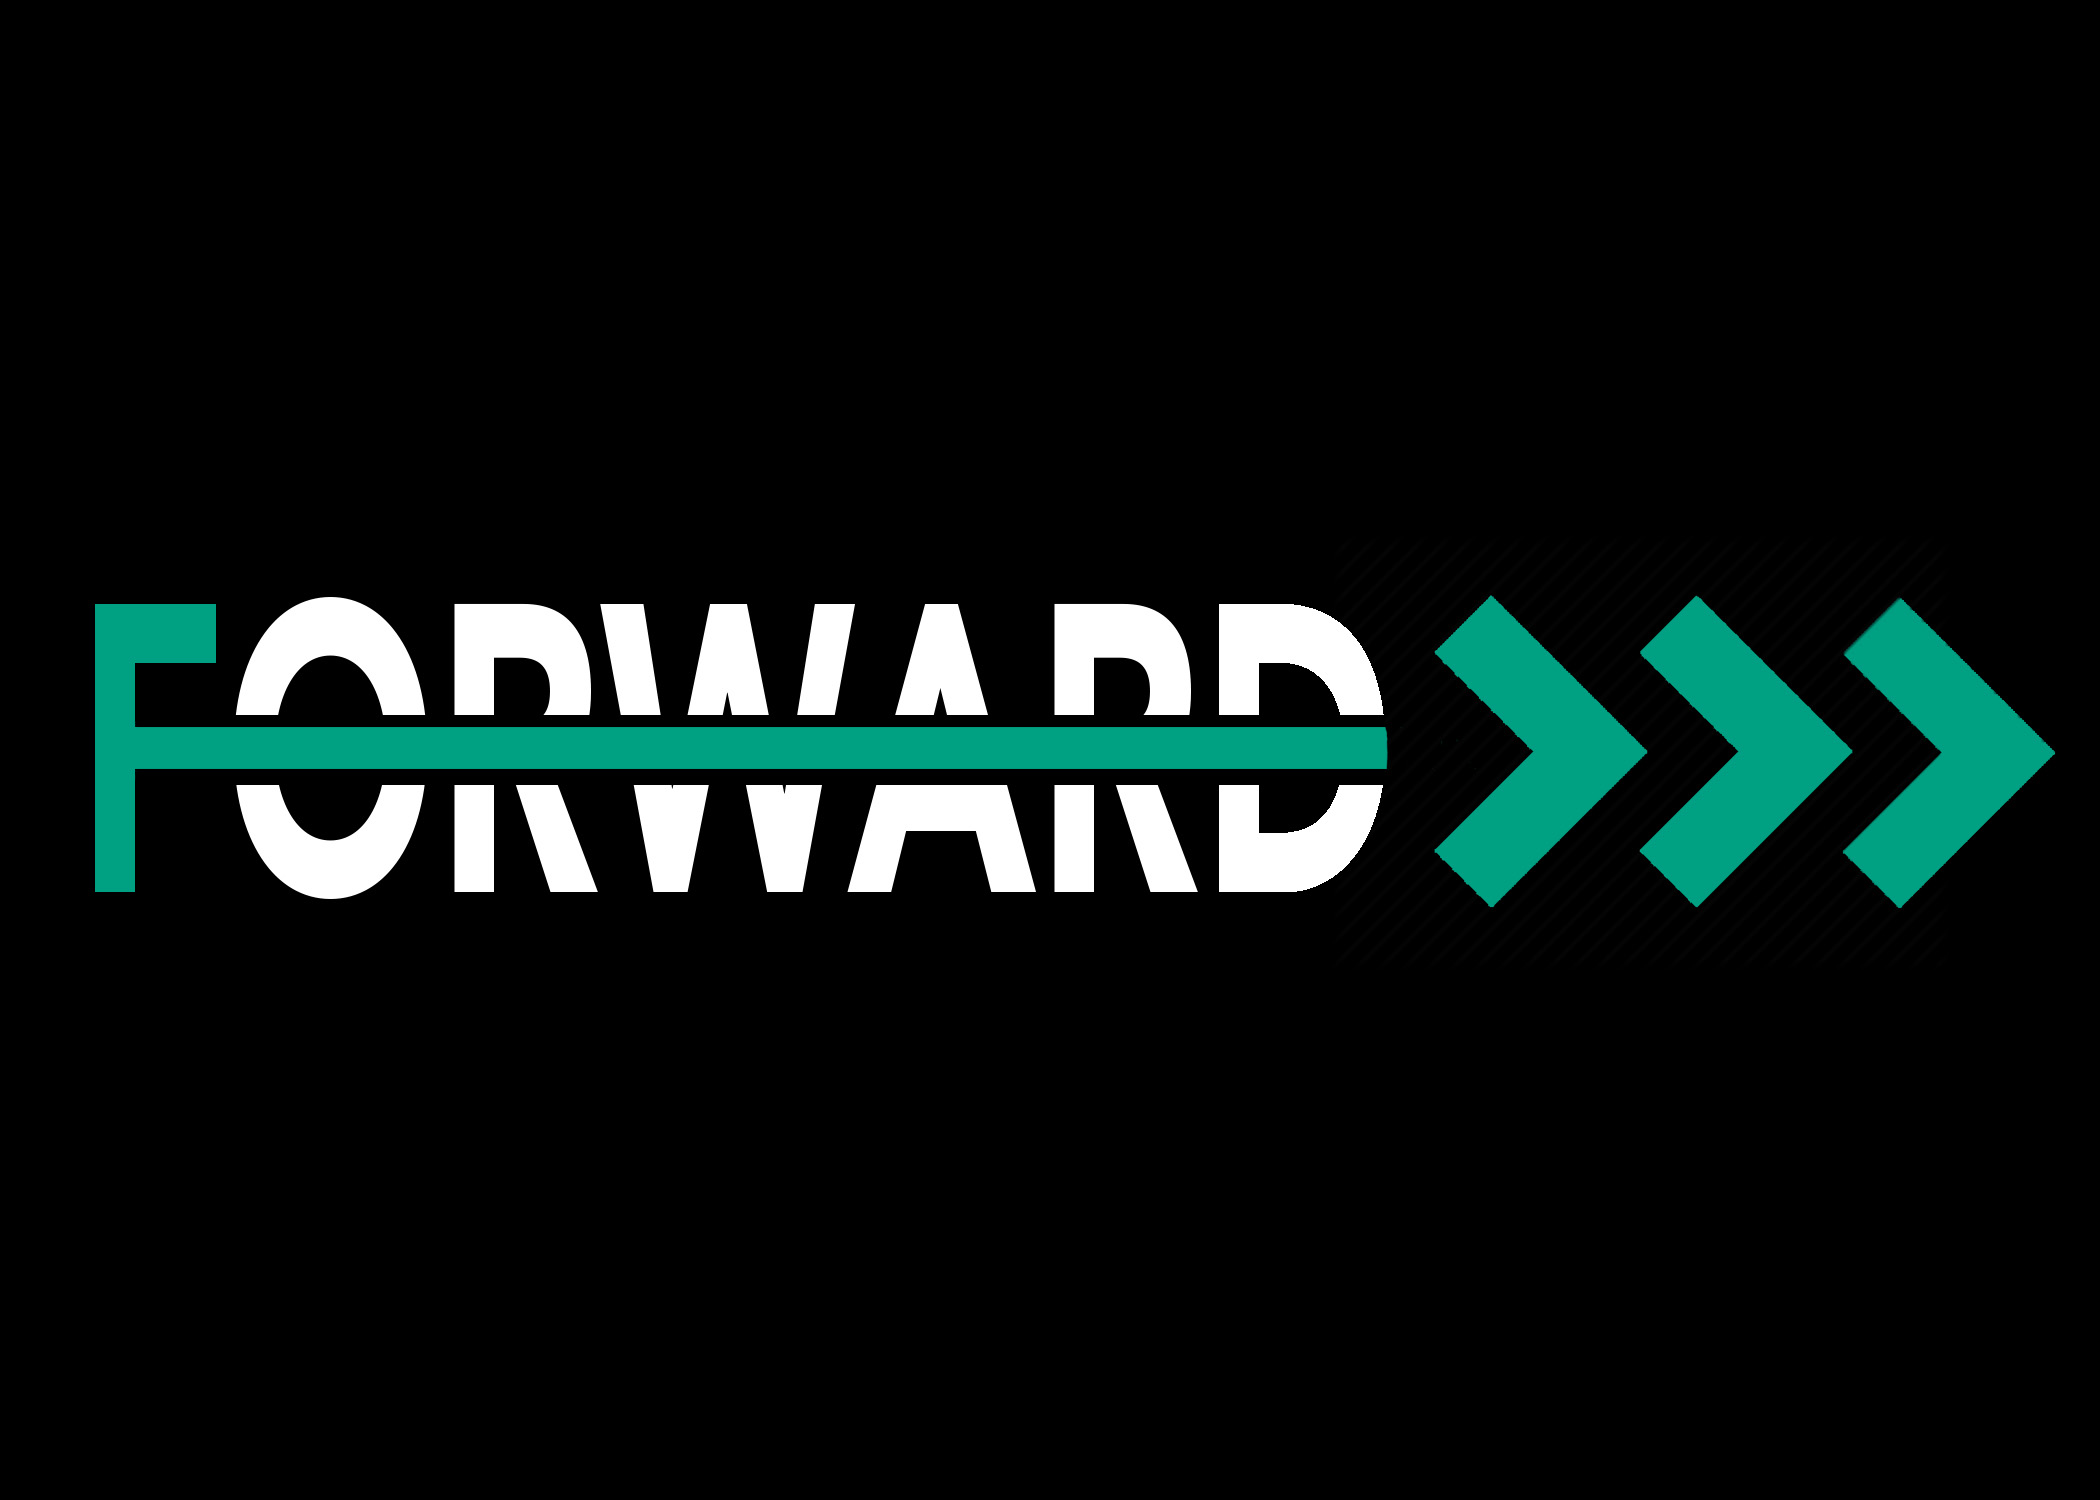 Forward | 6.2.19 - Making the Most of Where You ArePhillip Martin